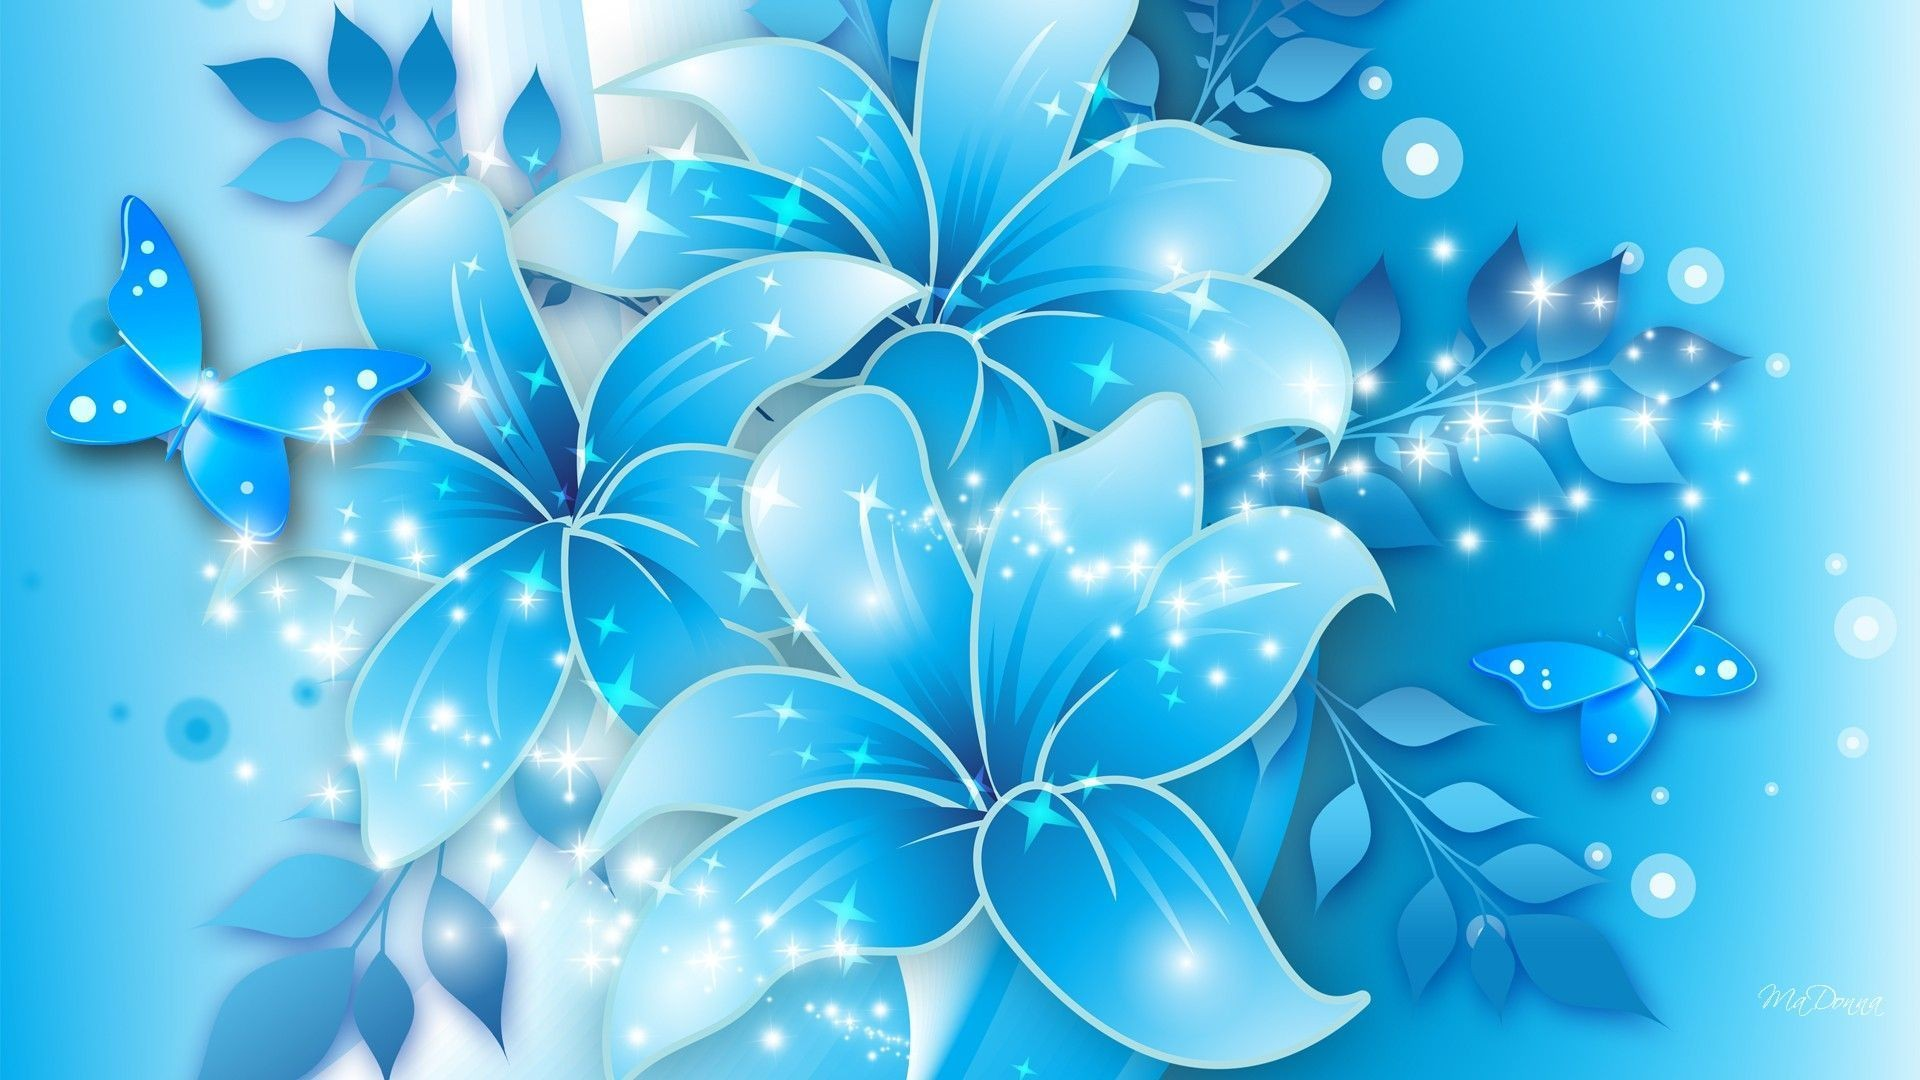 Blue Background Tumblr Download Free Amazing High